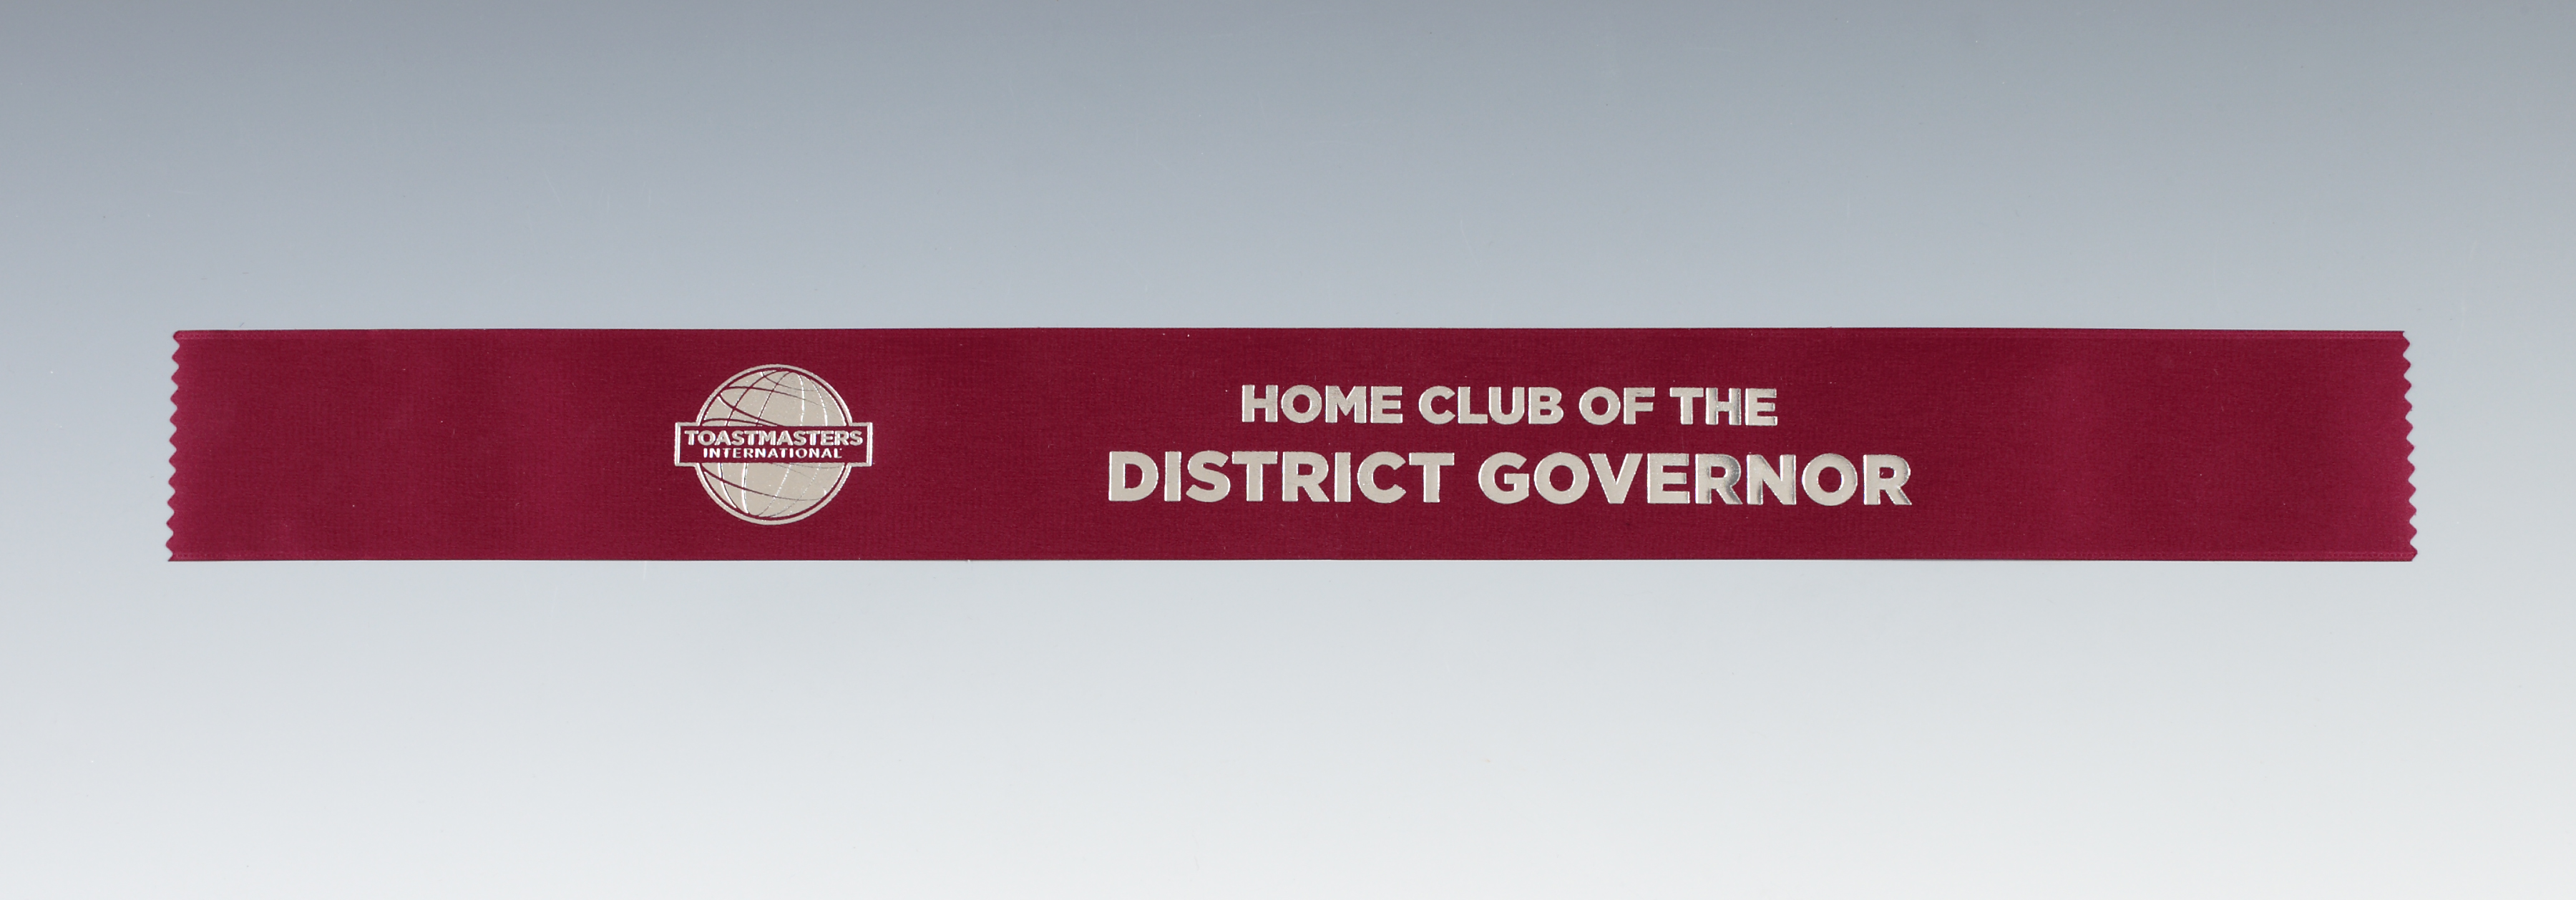 Home Club of the District Governor Ribbon